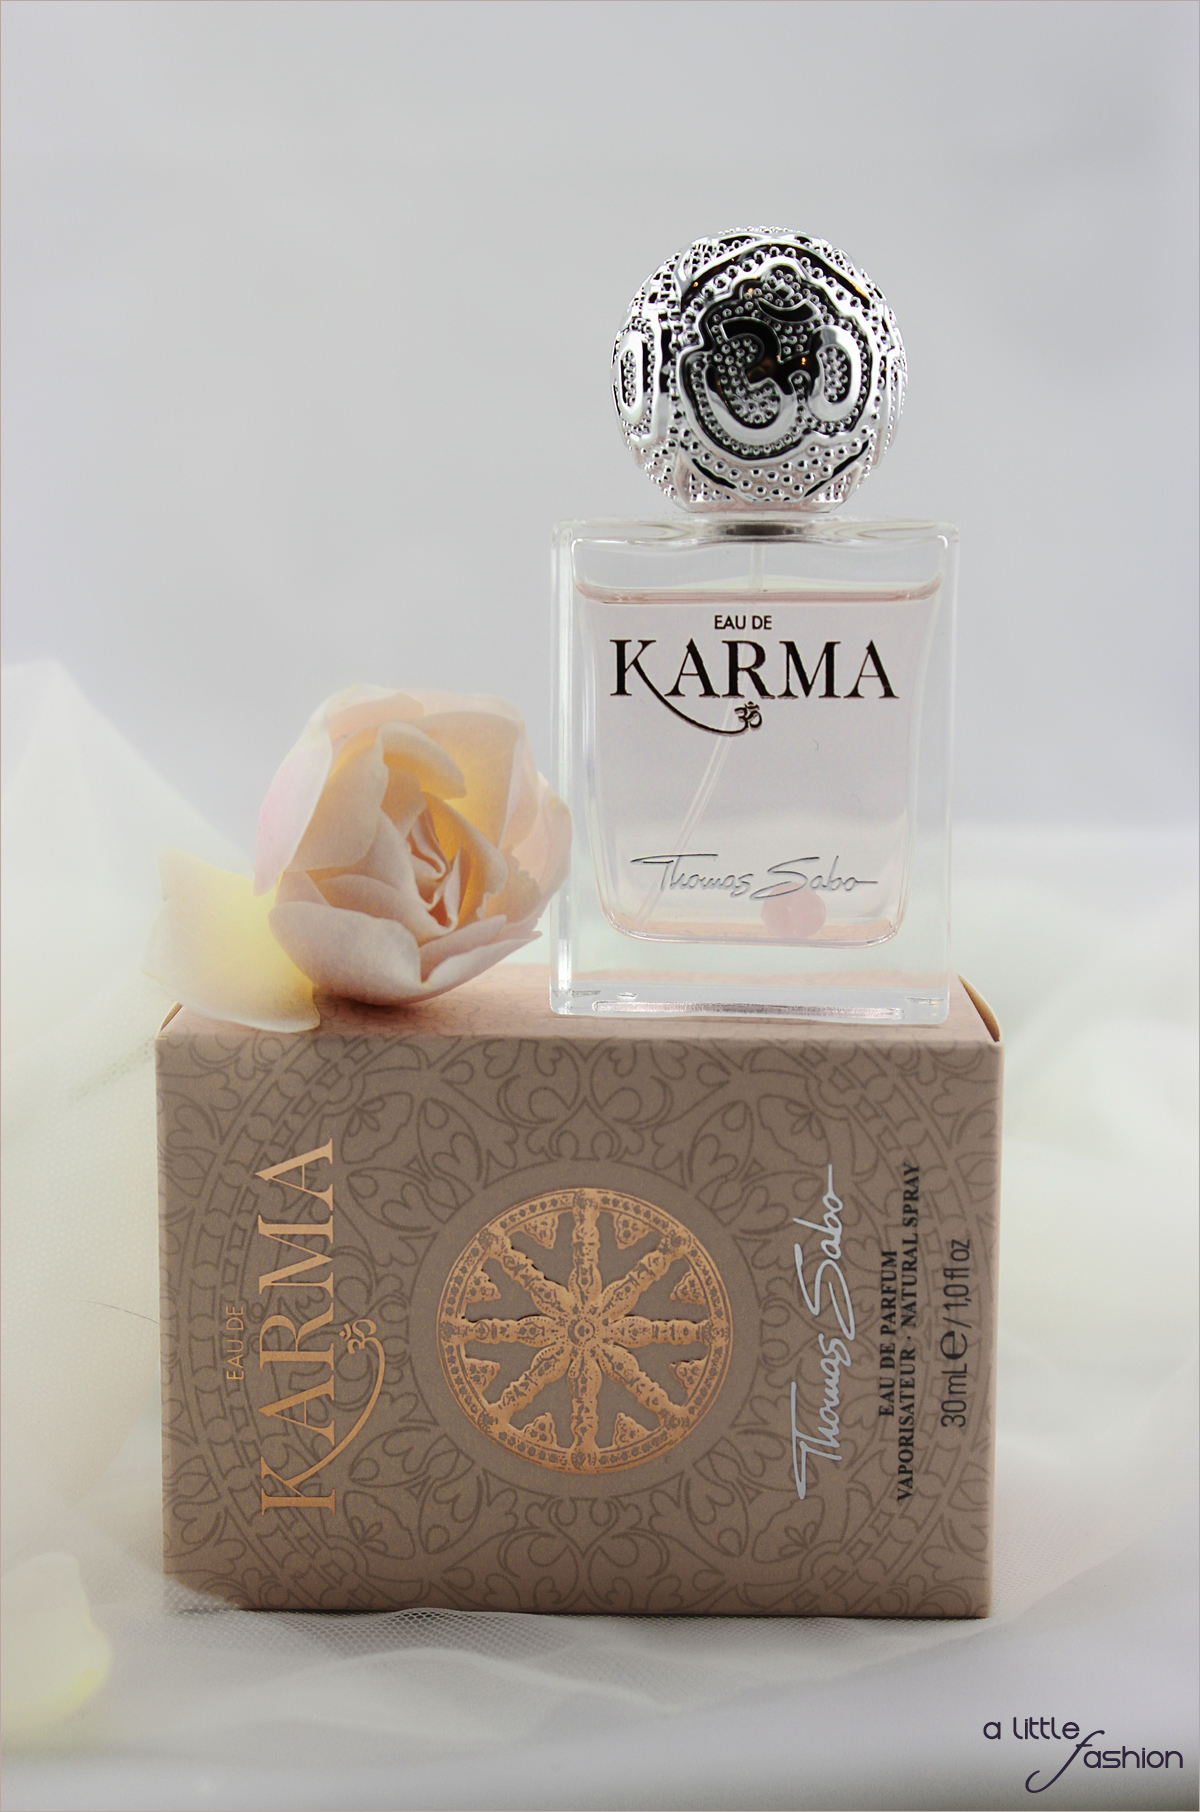 beauty_thomas-sabo_karma_parfum_eu-de-toilette_review2